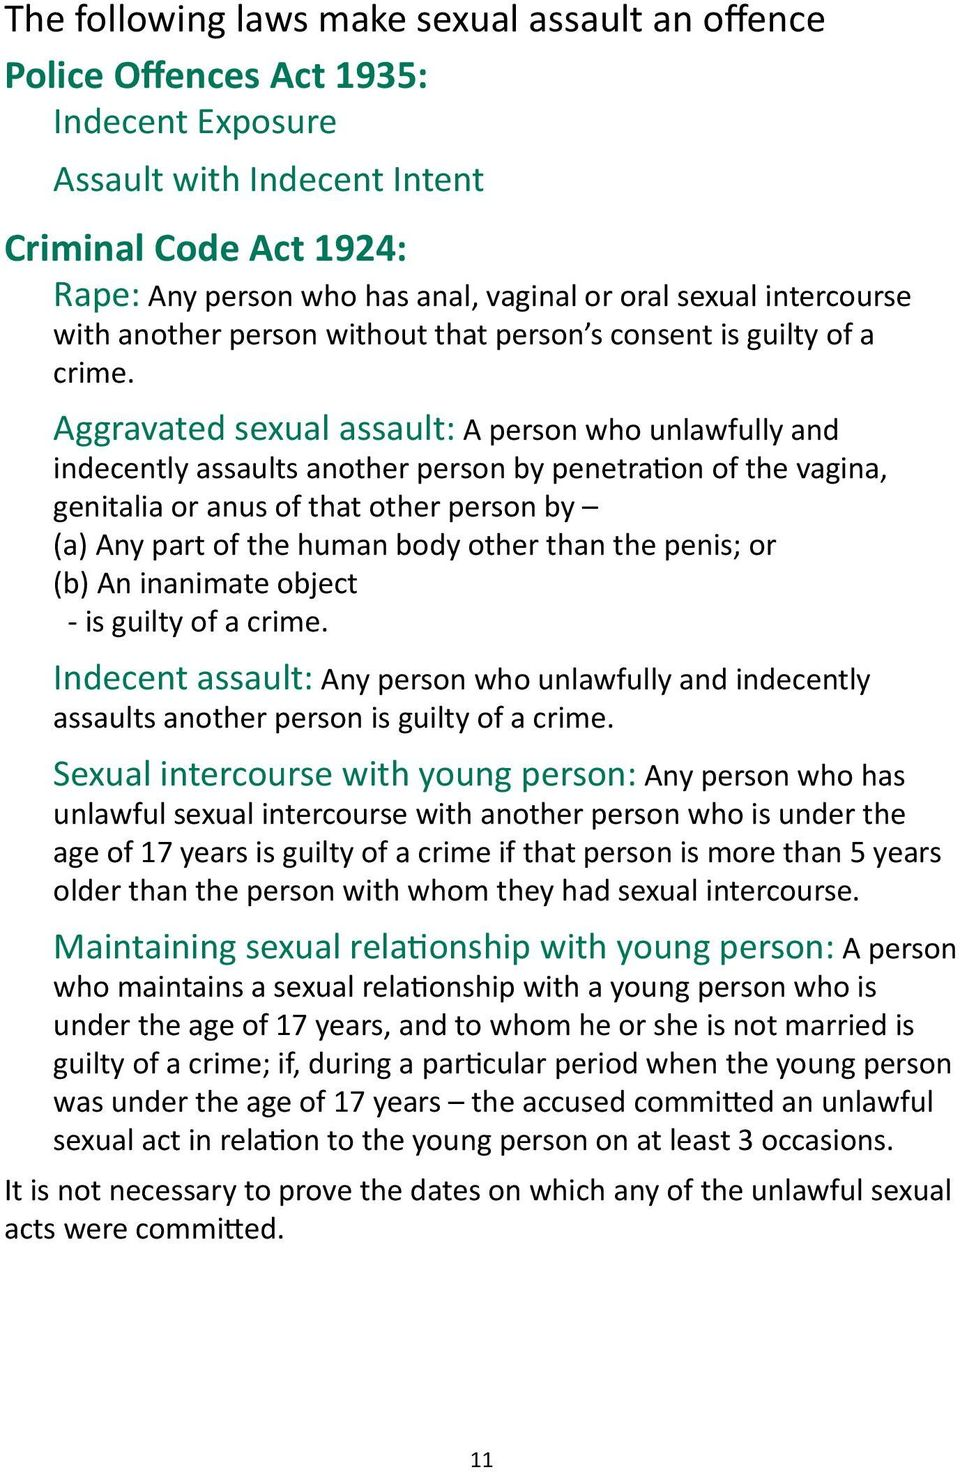 Aggravated sexual assault: A person who unlawfully and indecently assaults another person by penetration of the vagina, genitalia or anus of that other person by (a) Any part of the human body other